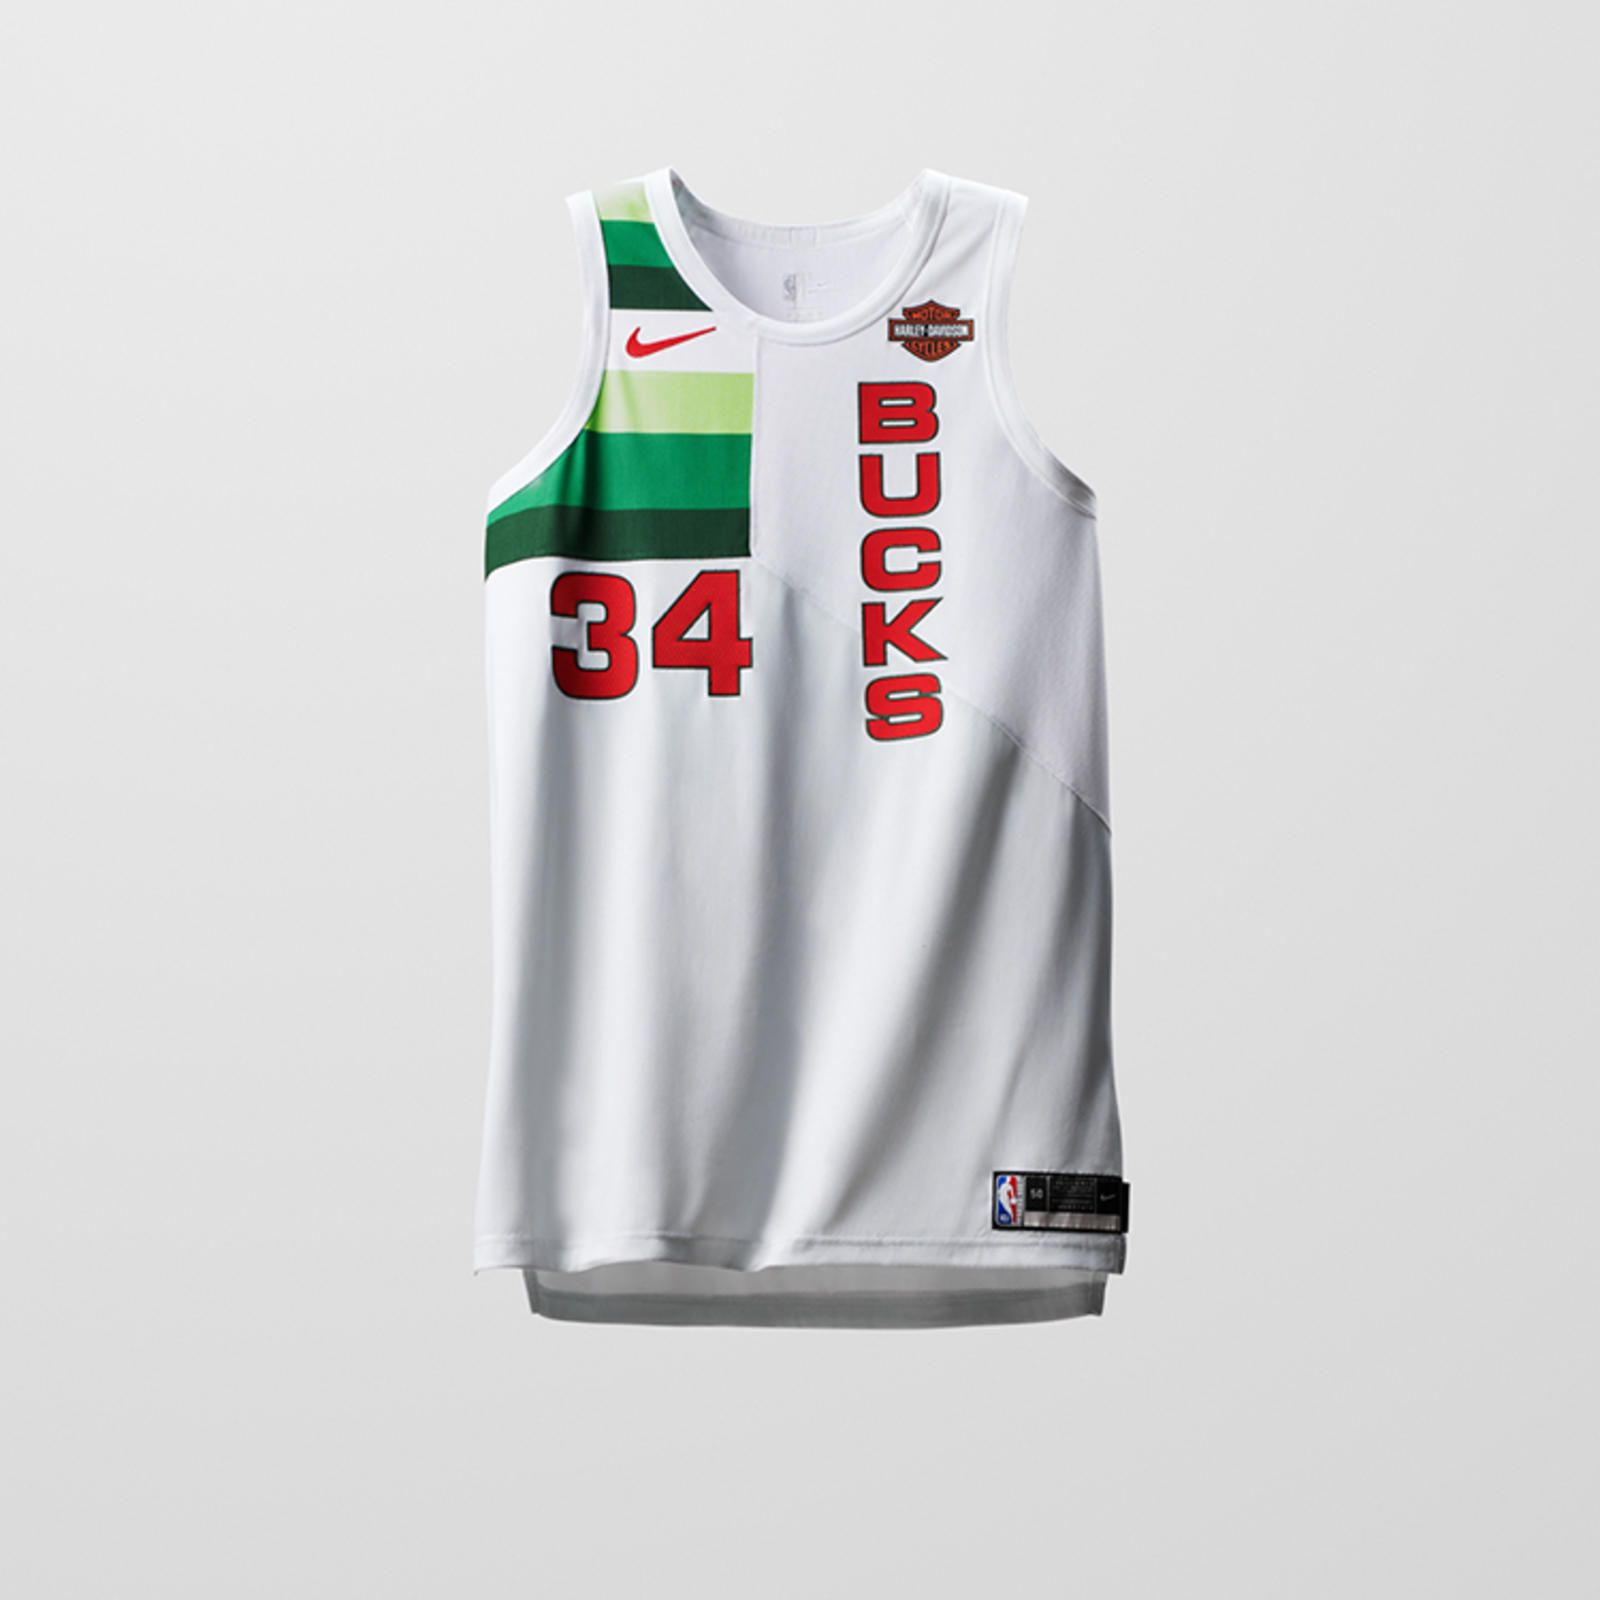 Introducing the Nike x NBA EARNED Edition Uniforms 15 8799851d1